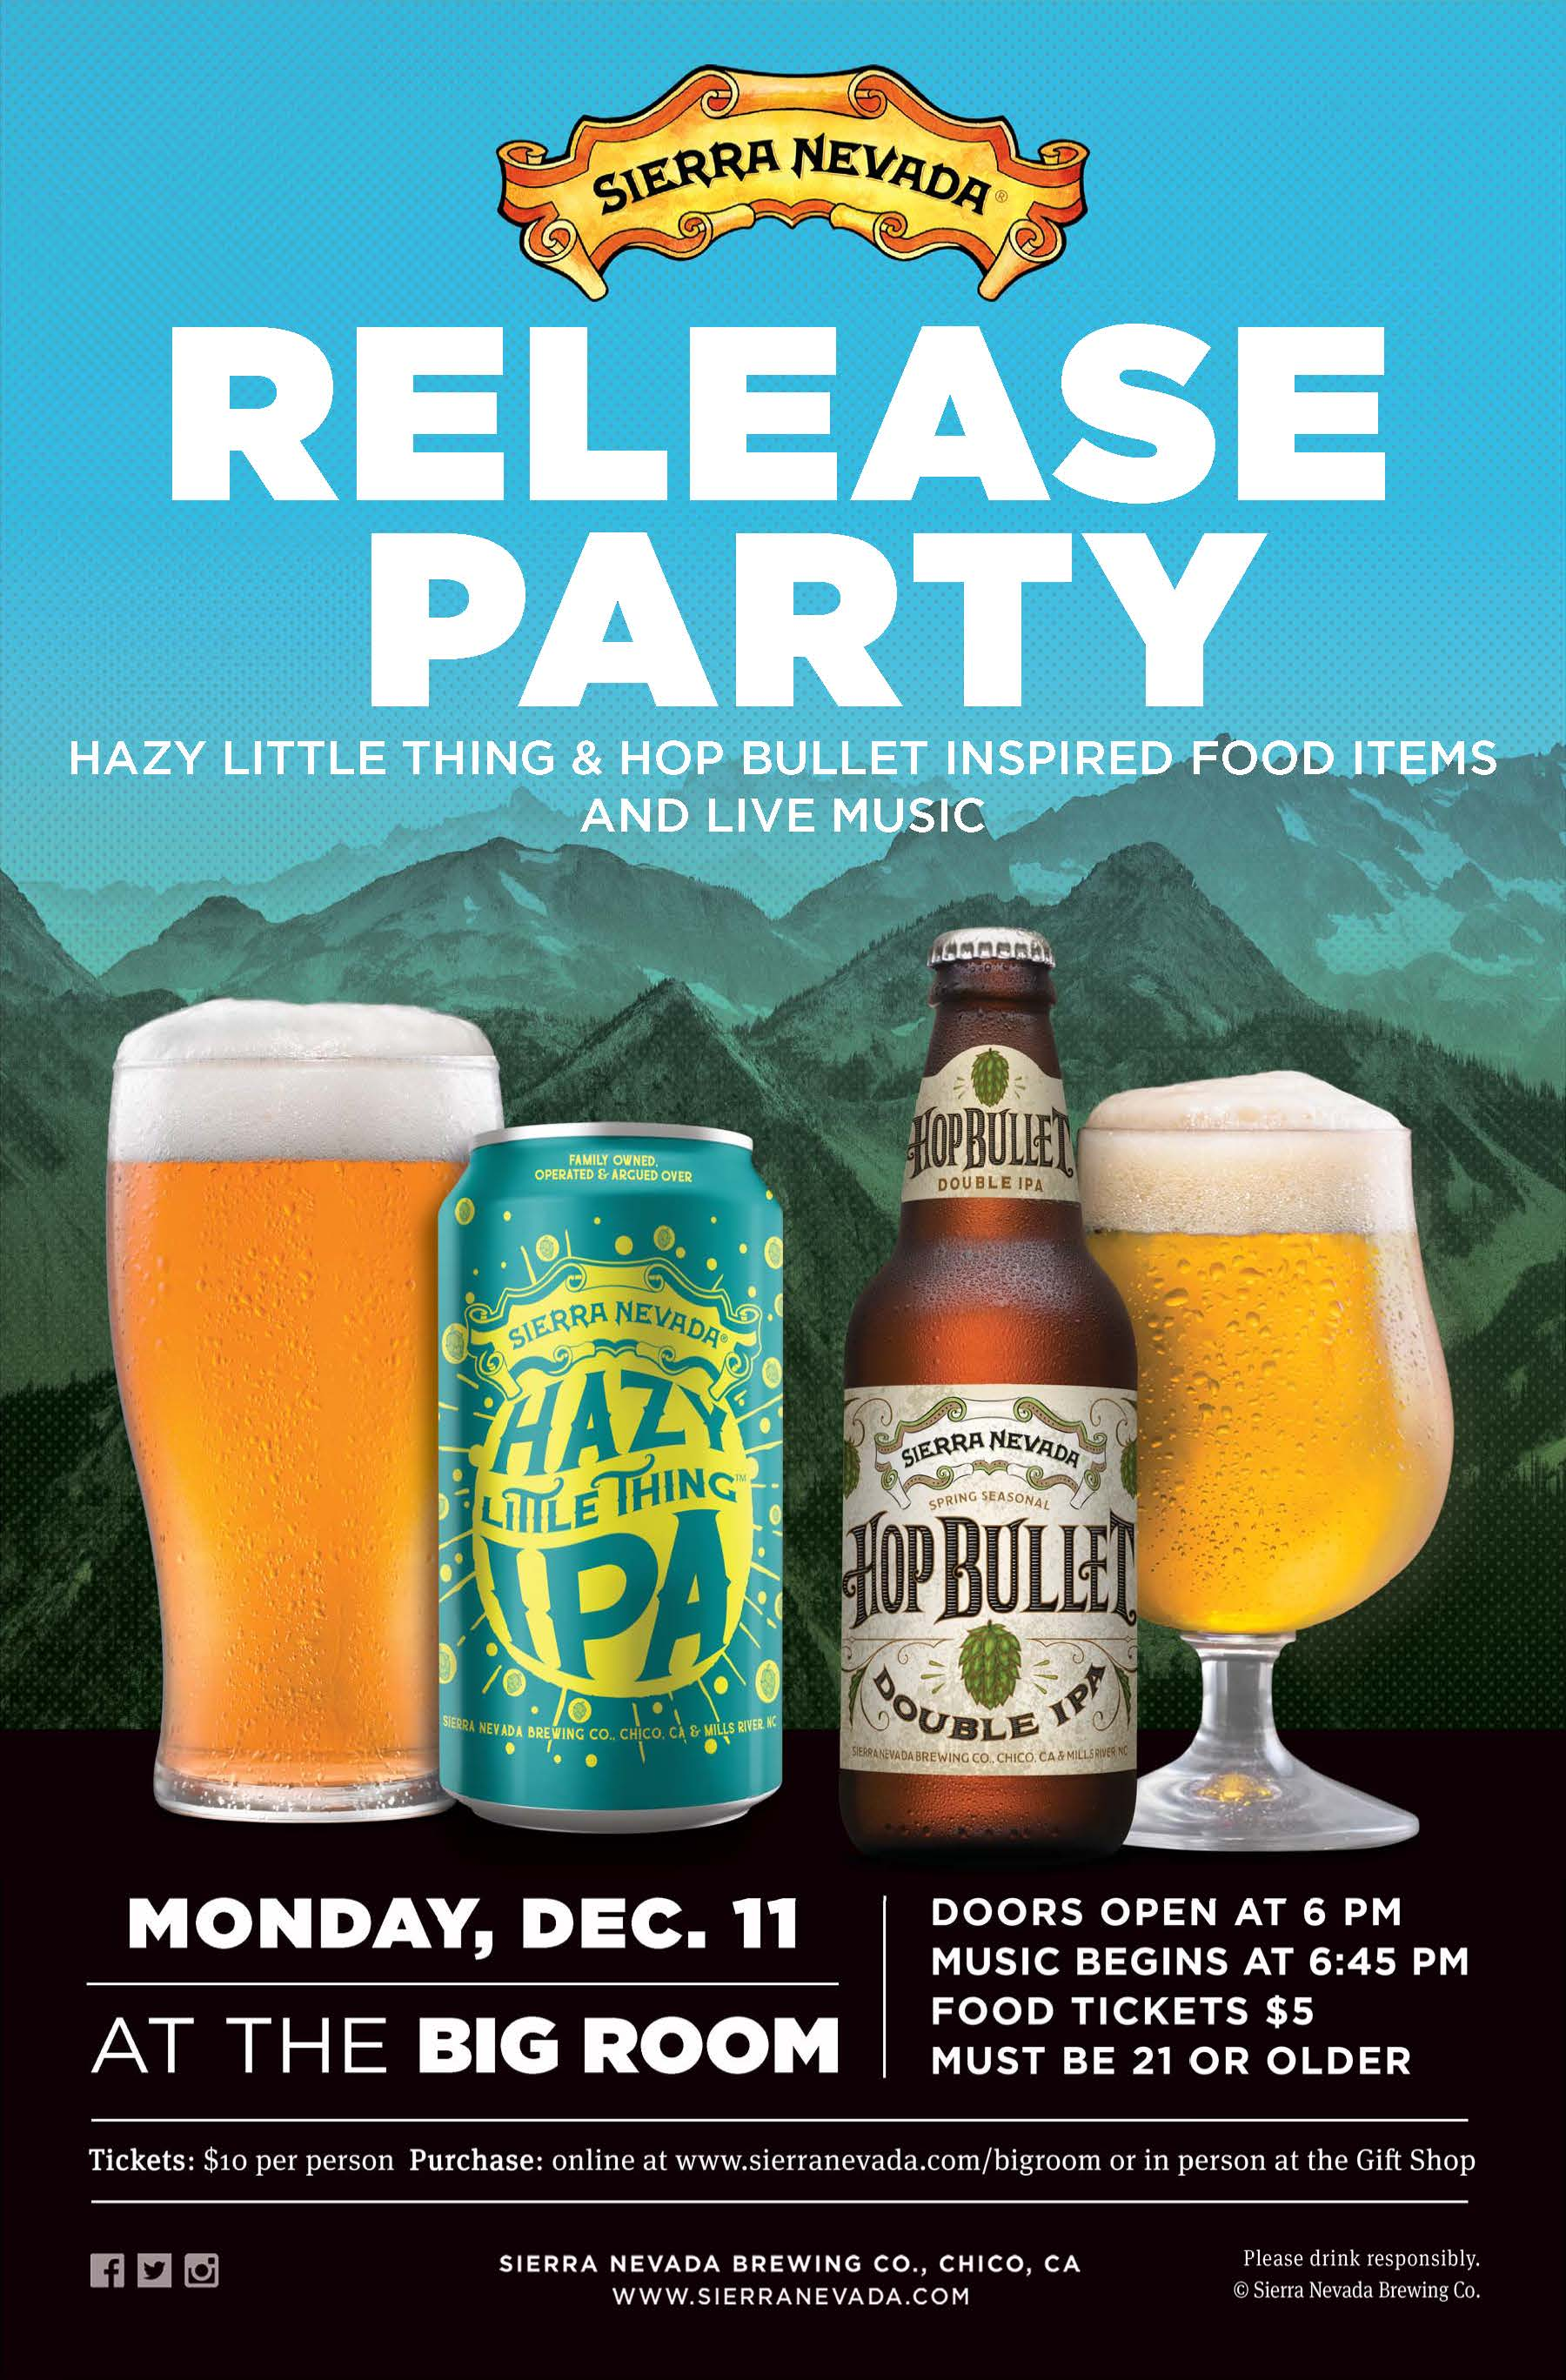 Hazy Little Thing & Hop Bullet Release Party